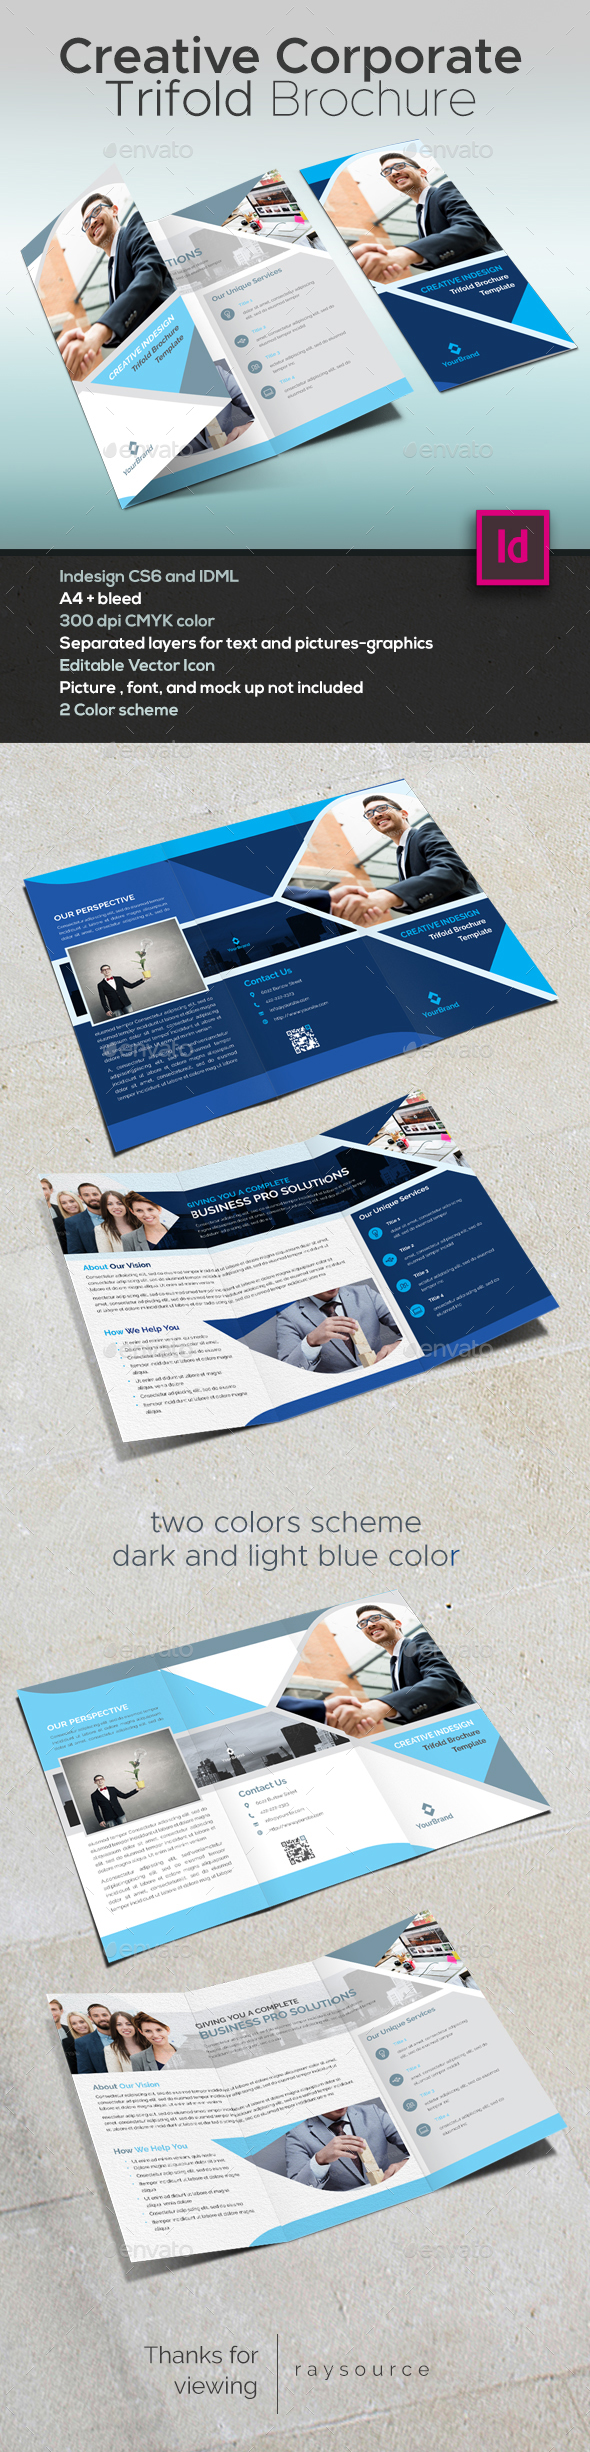 GraphicRiver Creative Corporate Trifold Brochure 21169643